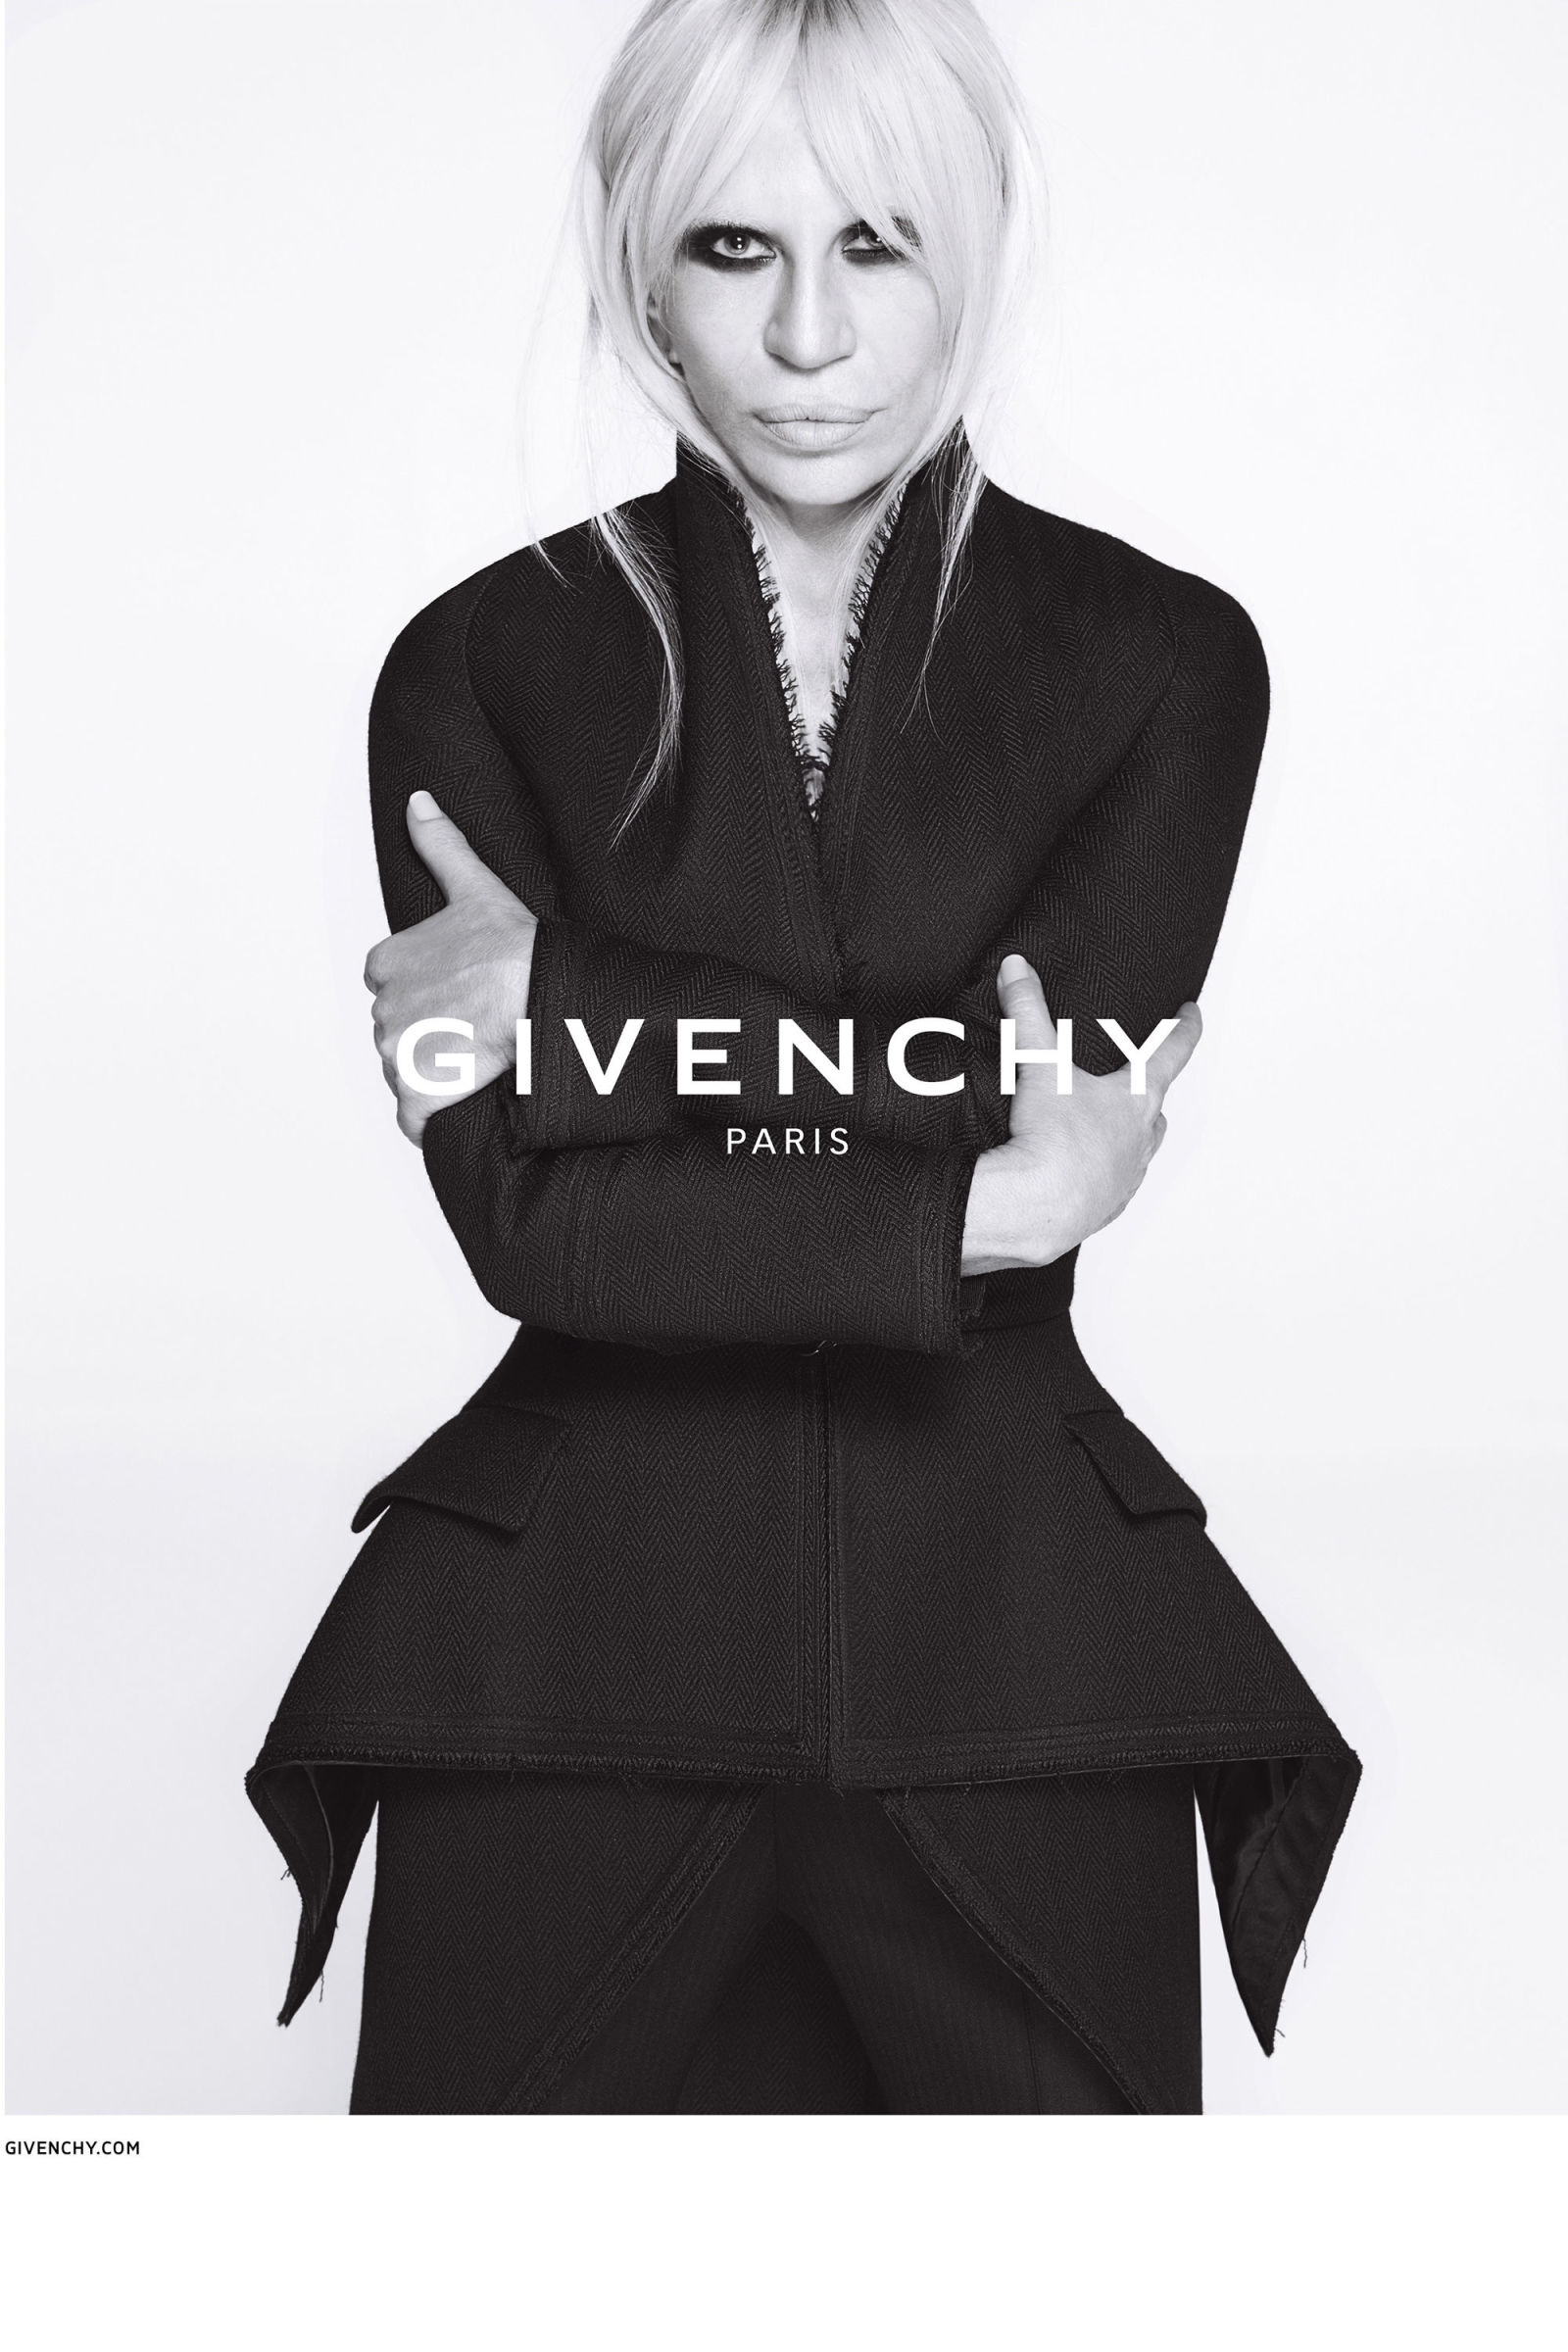 gallery-1435164034-hbz-best-ads-givenchy.jpg